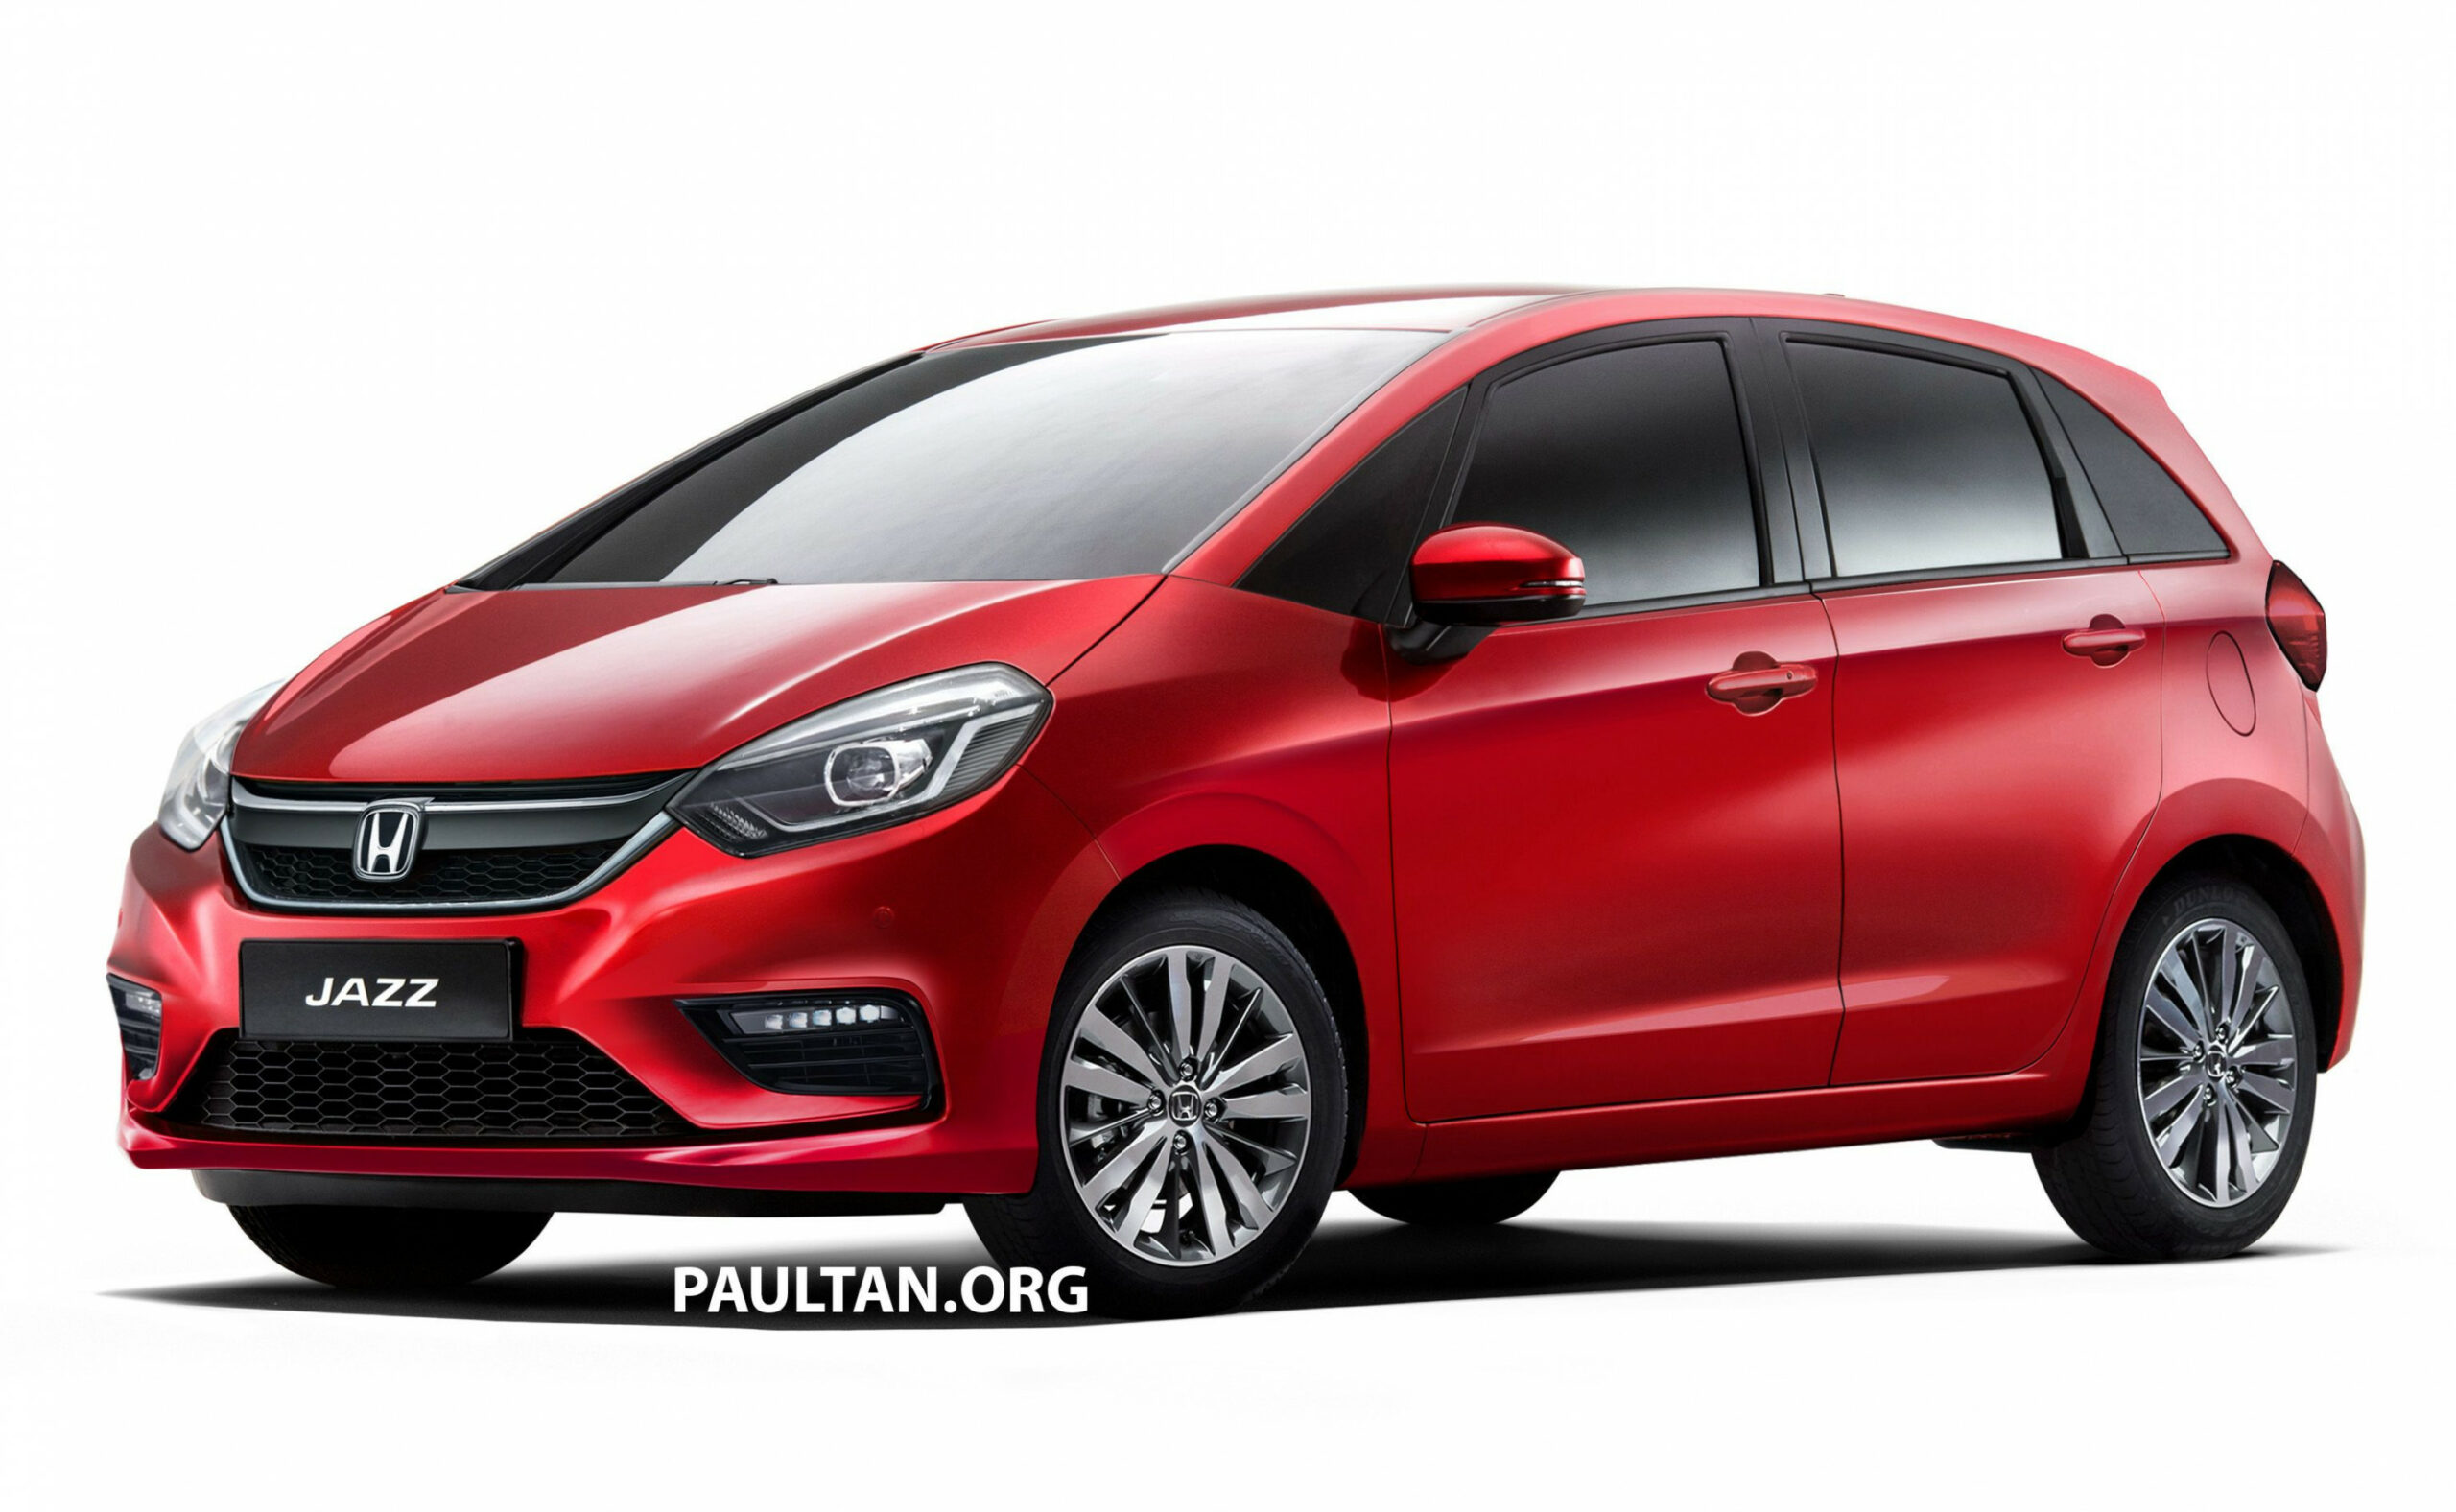 honda jazz 6 price malaysia Review, specs and Release date 6 ...